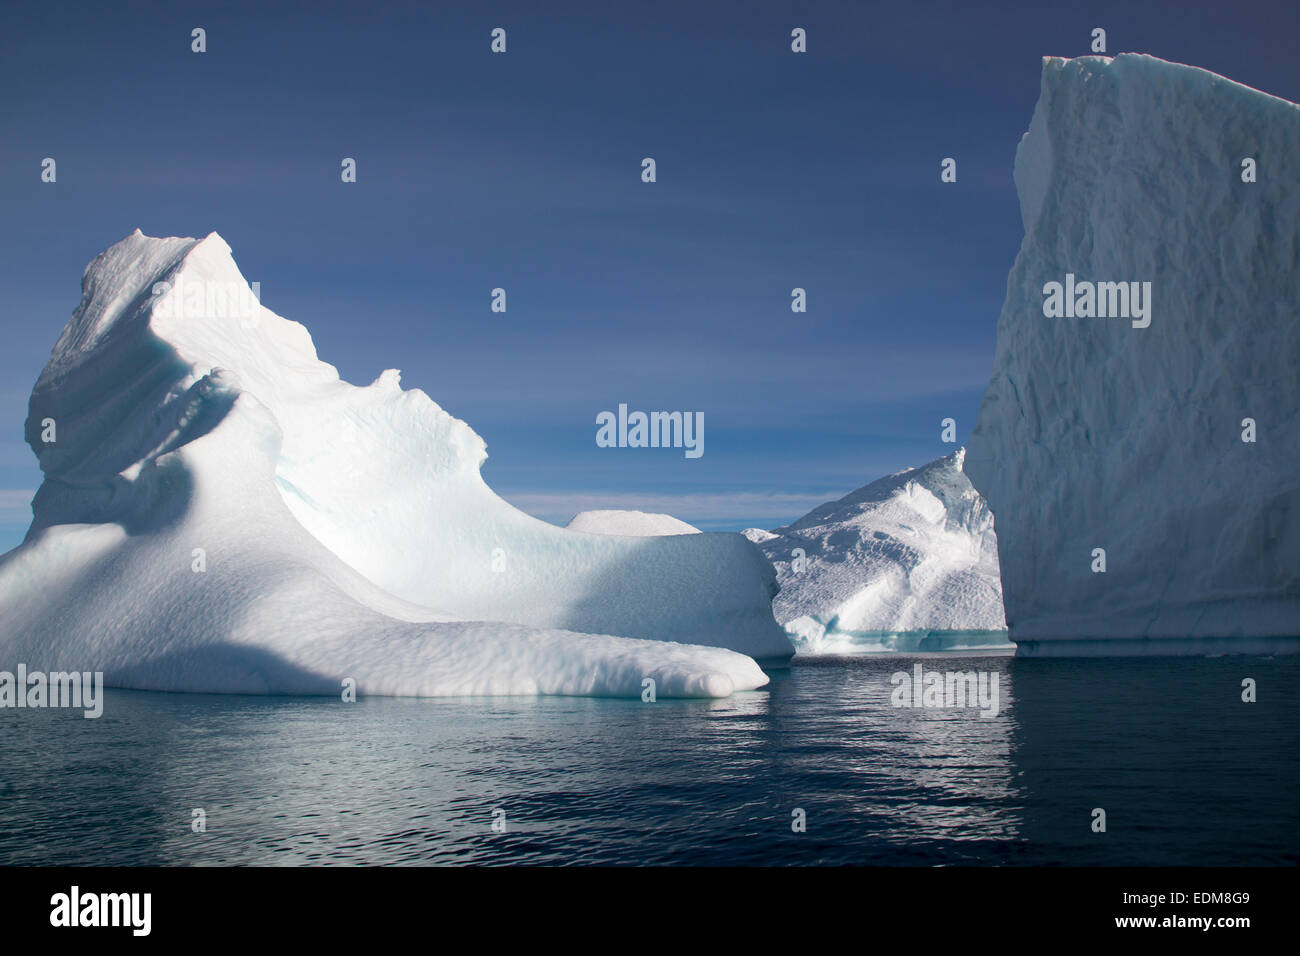 Icebergs in Scoresby Sund, East Greenland. - Stock Image